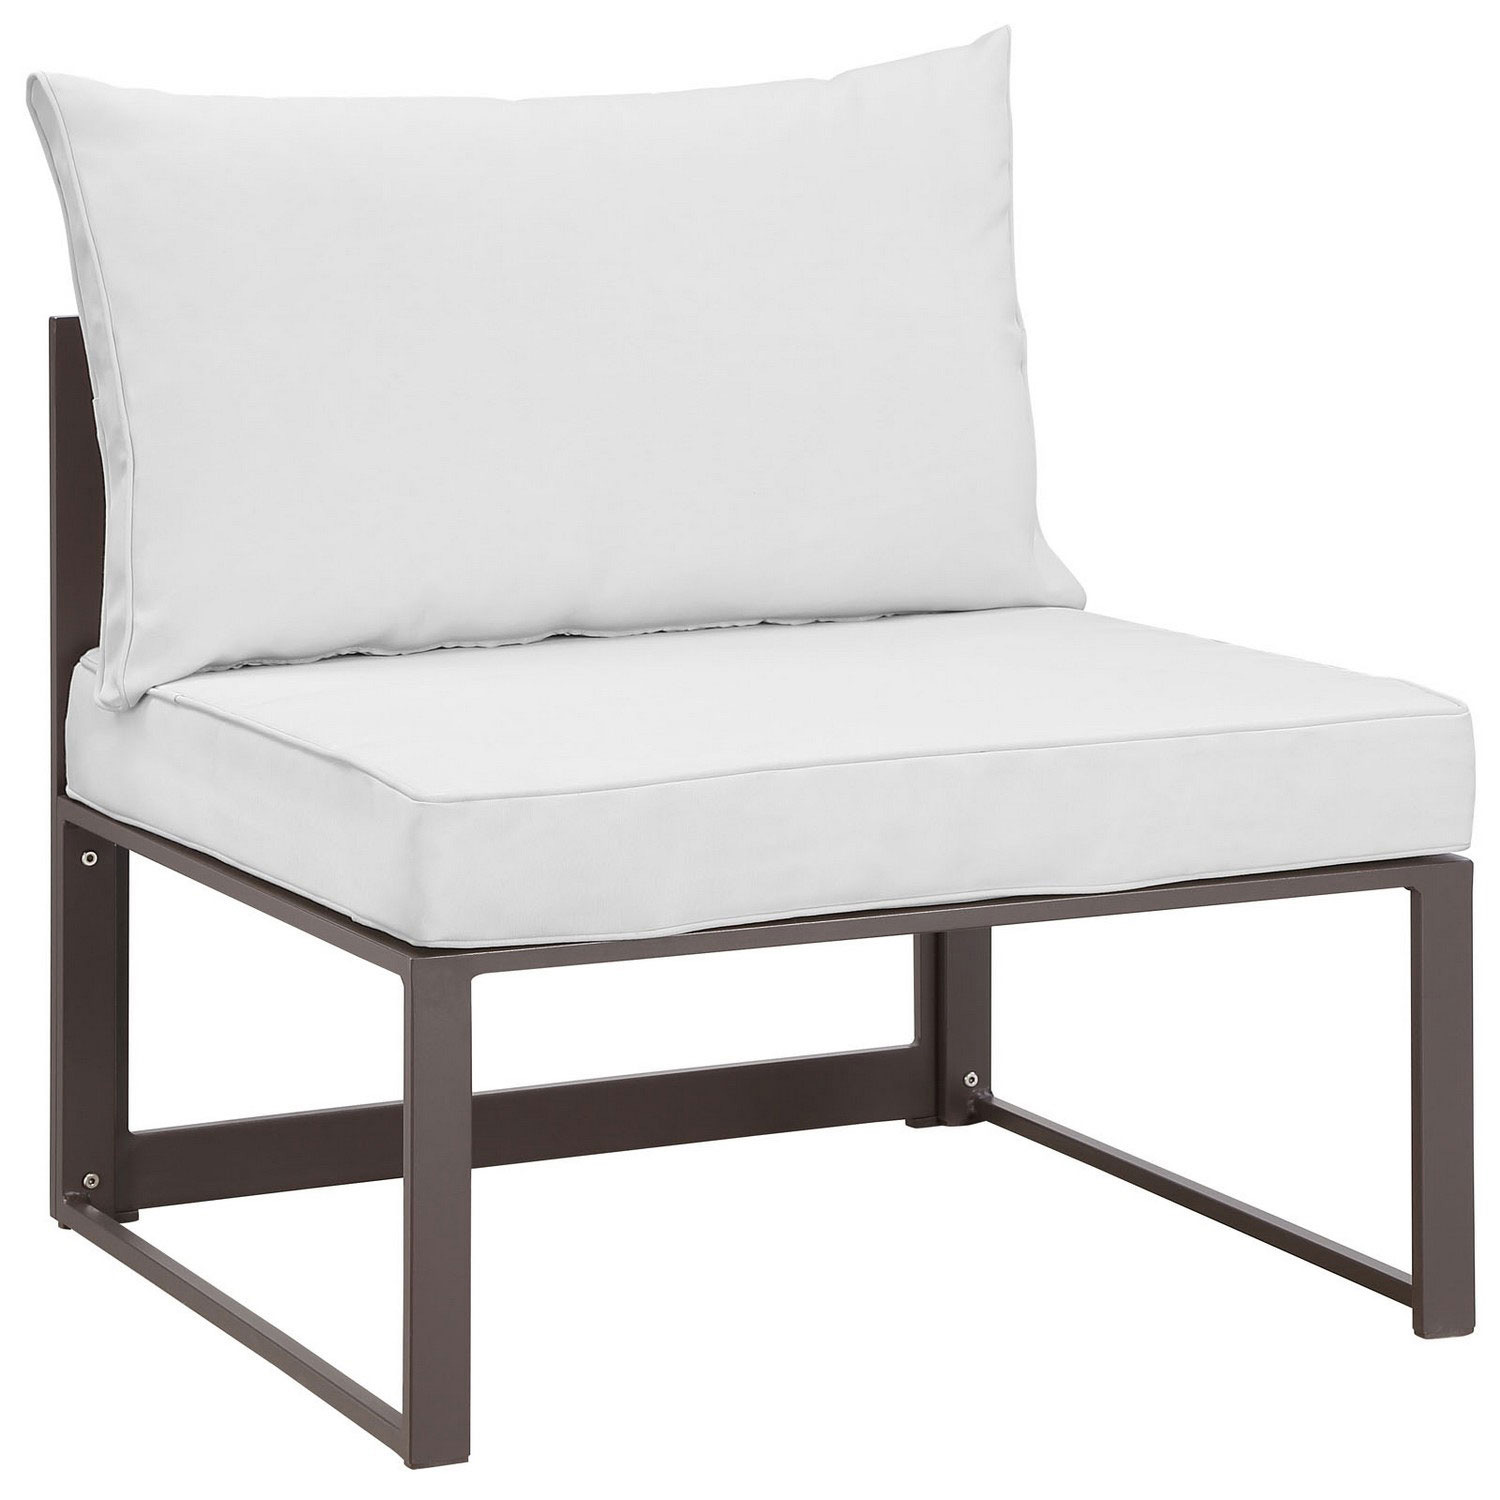 Modway Fortuna 9 Piece Outdoor Patio Sectional Sofa Set - Brown/White